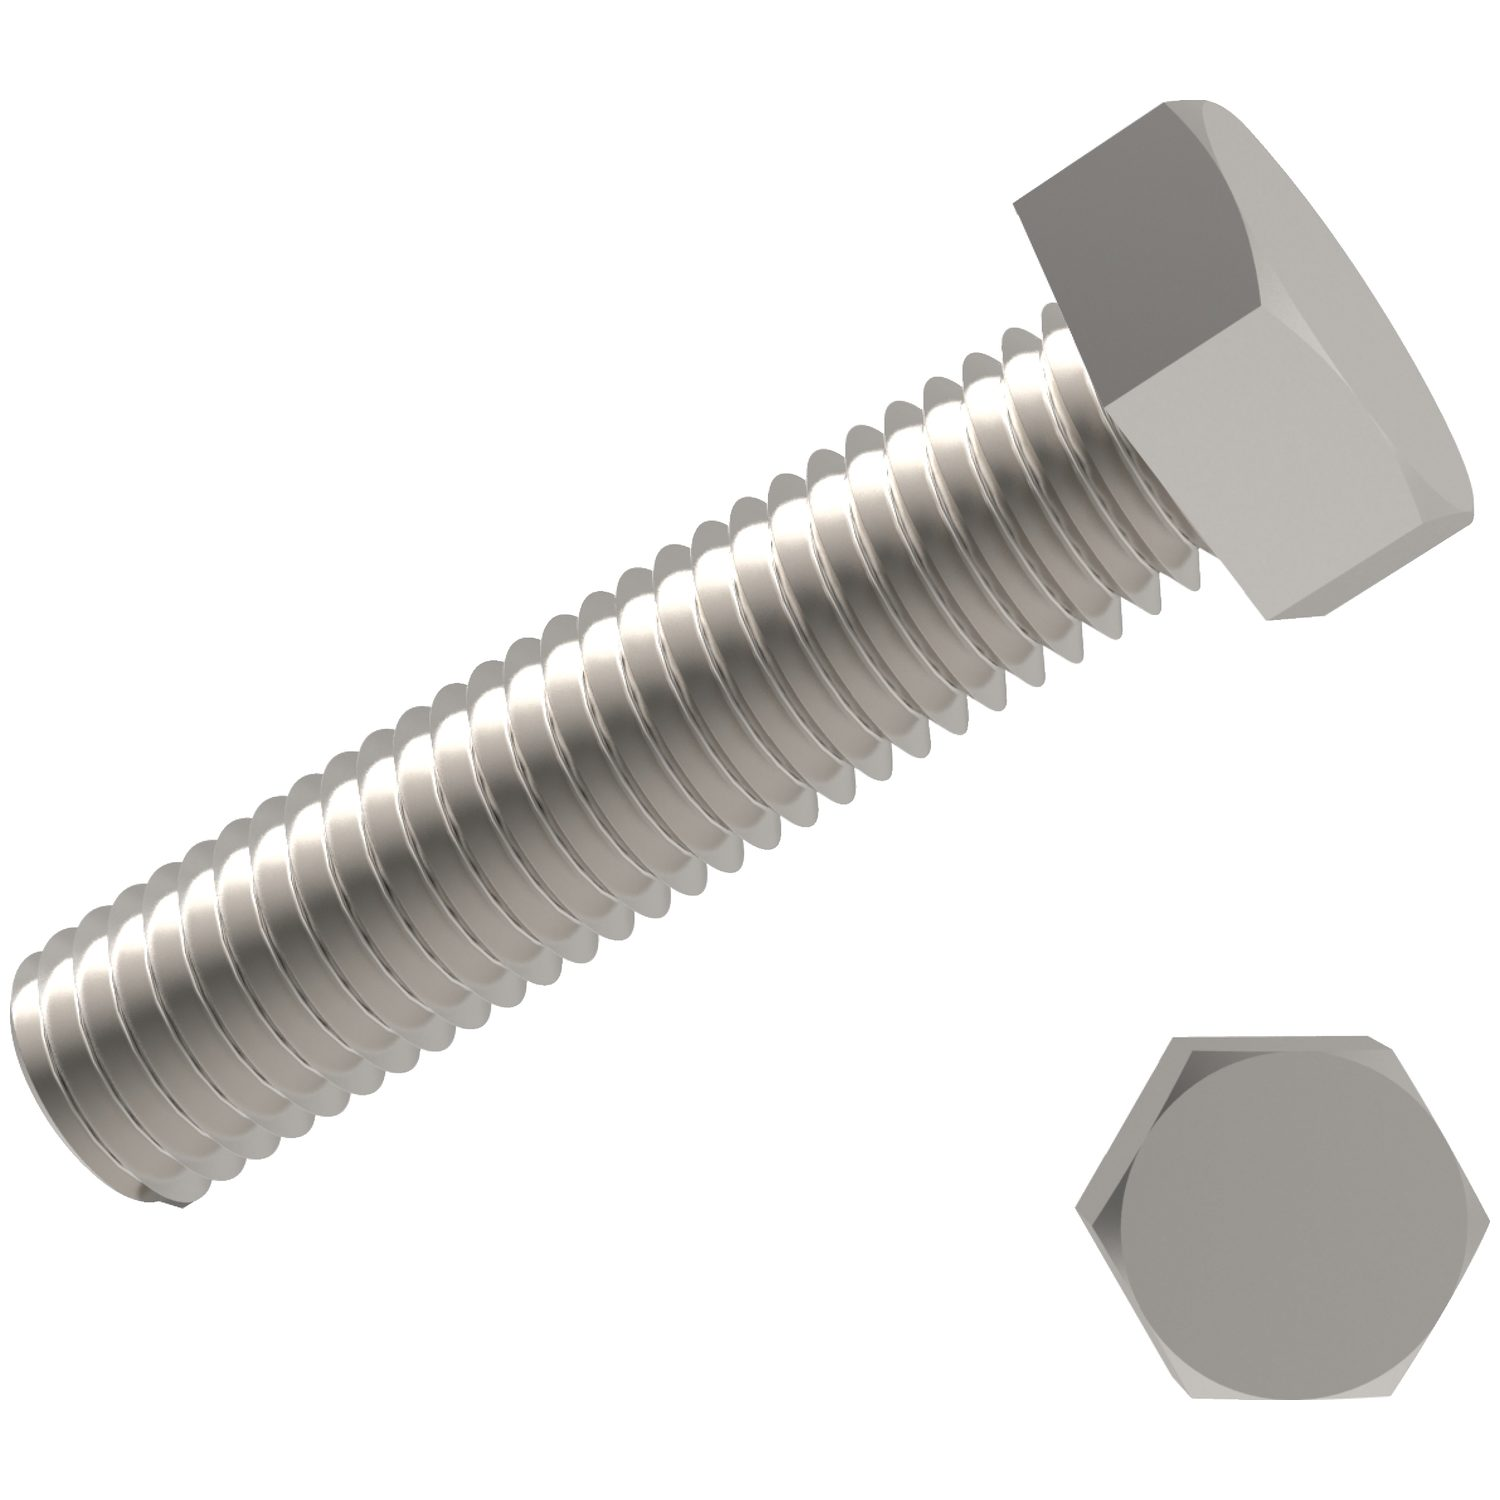 P0260.A4 - Hexagon Head Set Screws